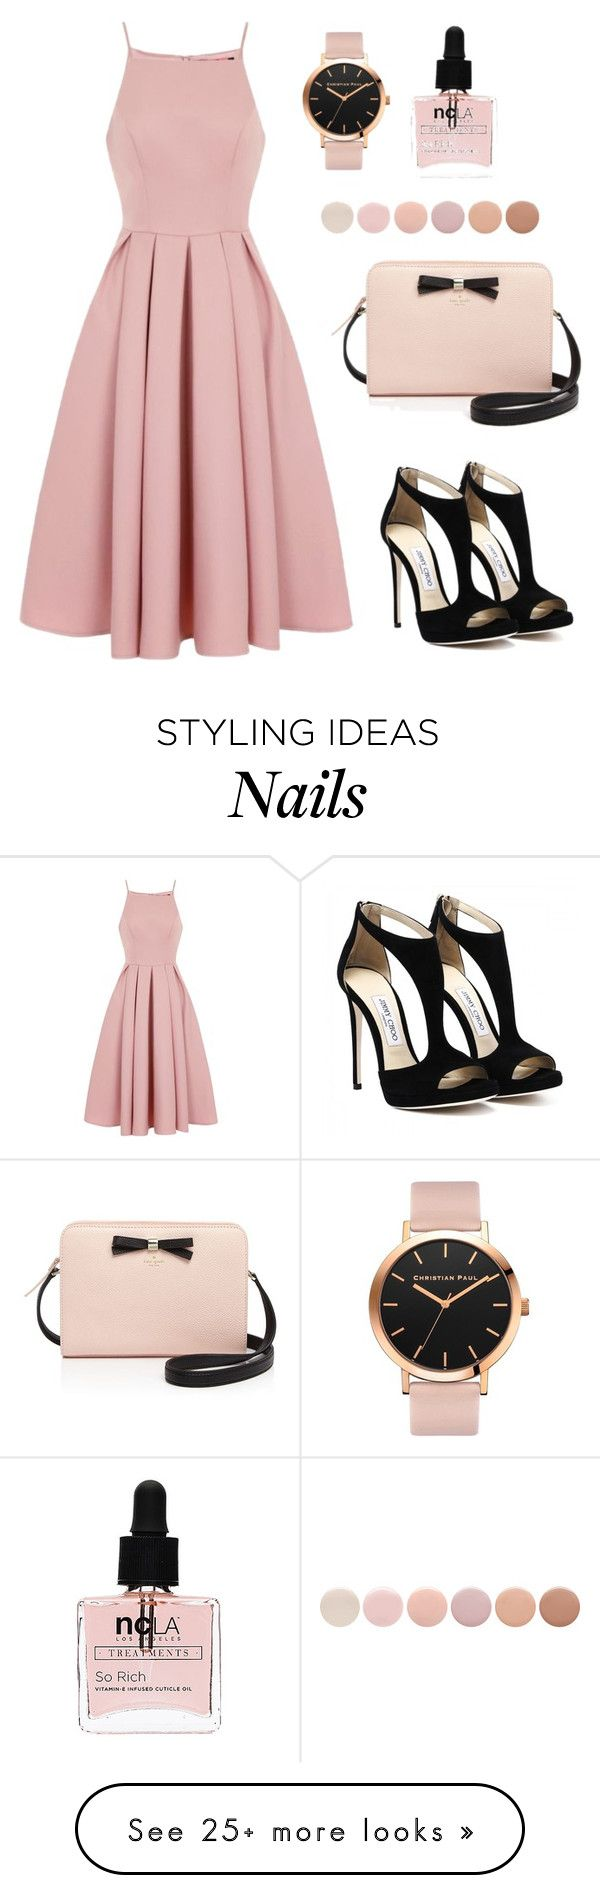 """#53 Casually Lovely"" by jocelynleebold on Polyvore featuring Chi Chi, Kate Spade, ncLA and Deborah Lippmann"